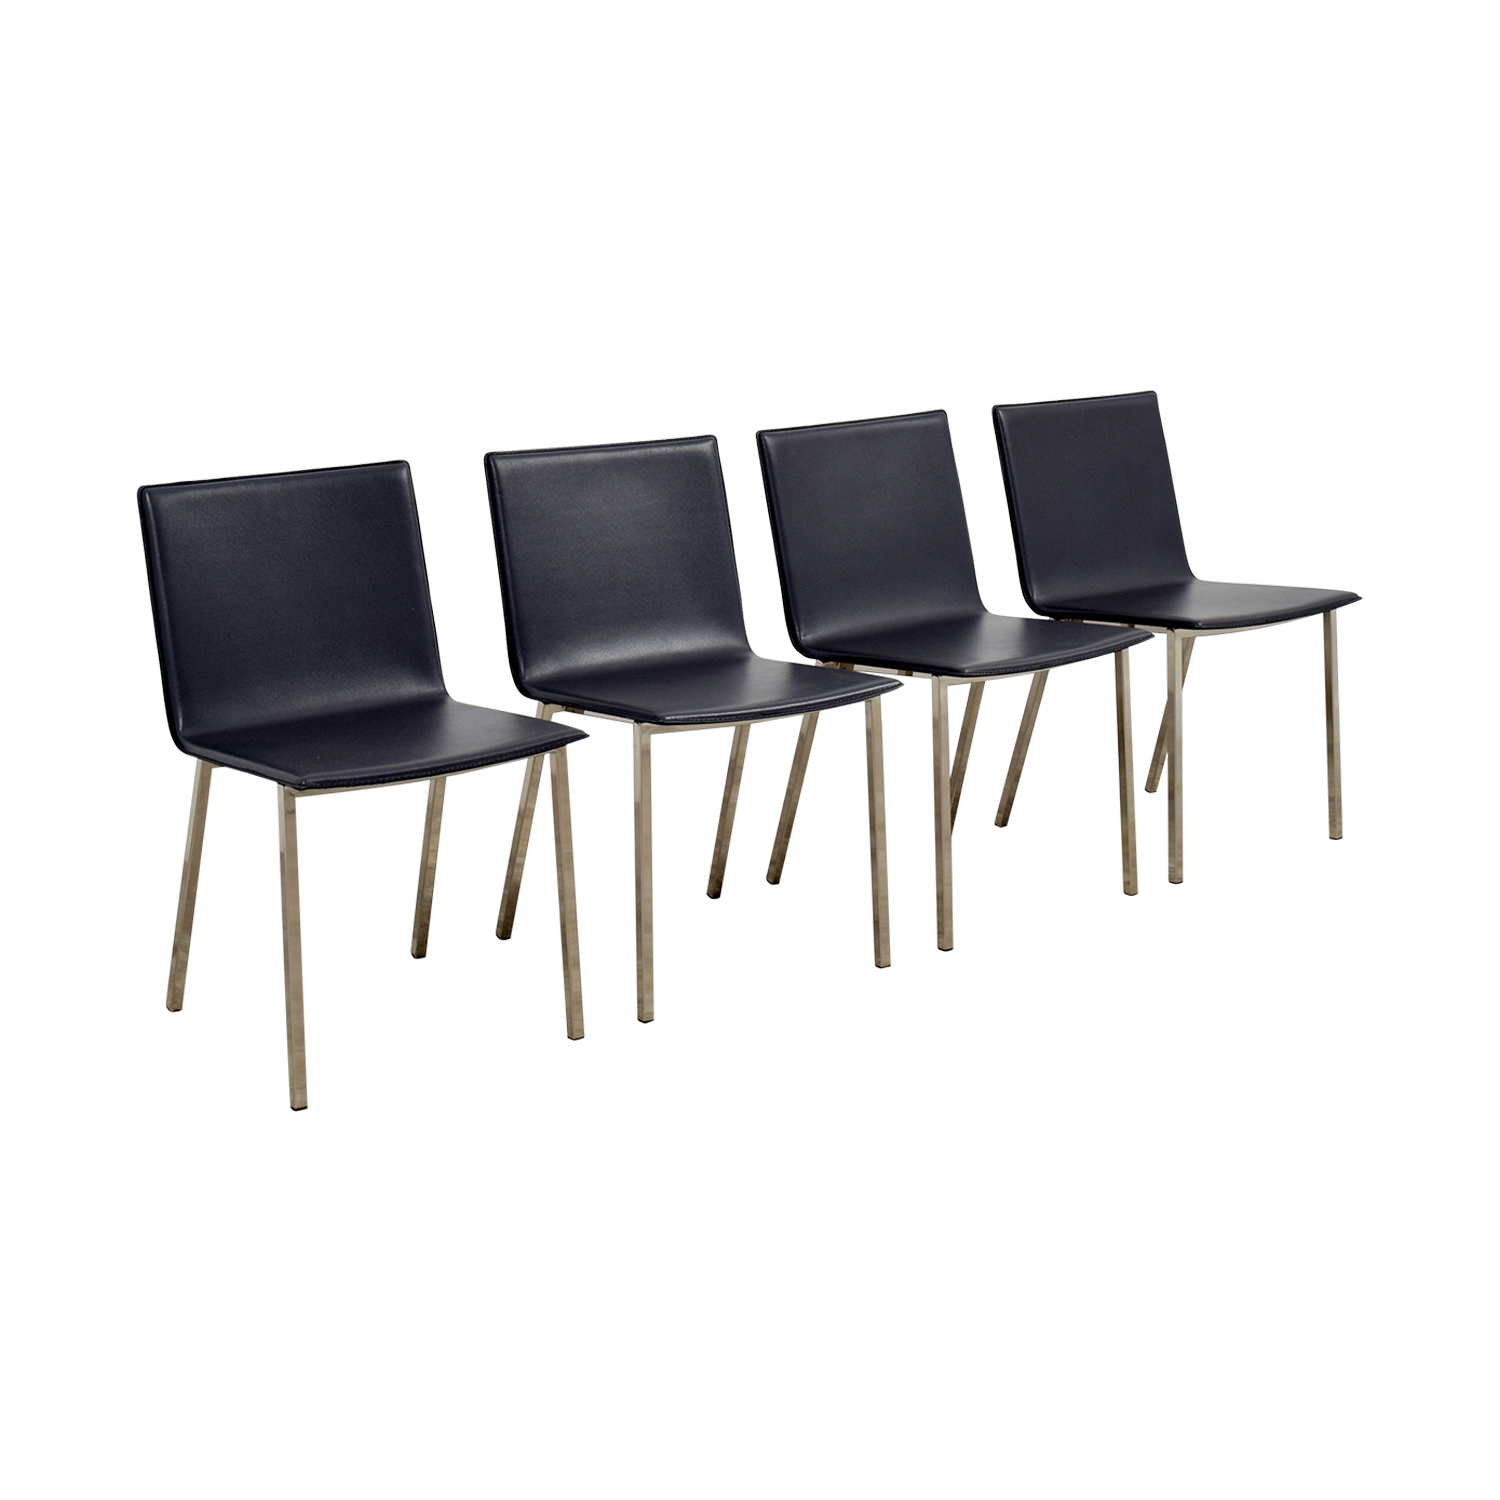 41 Off Cb2 Cb2 Grey Leather Chairs Chairs